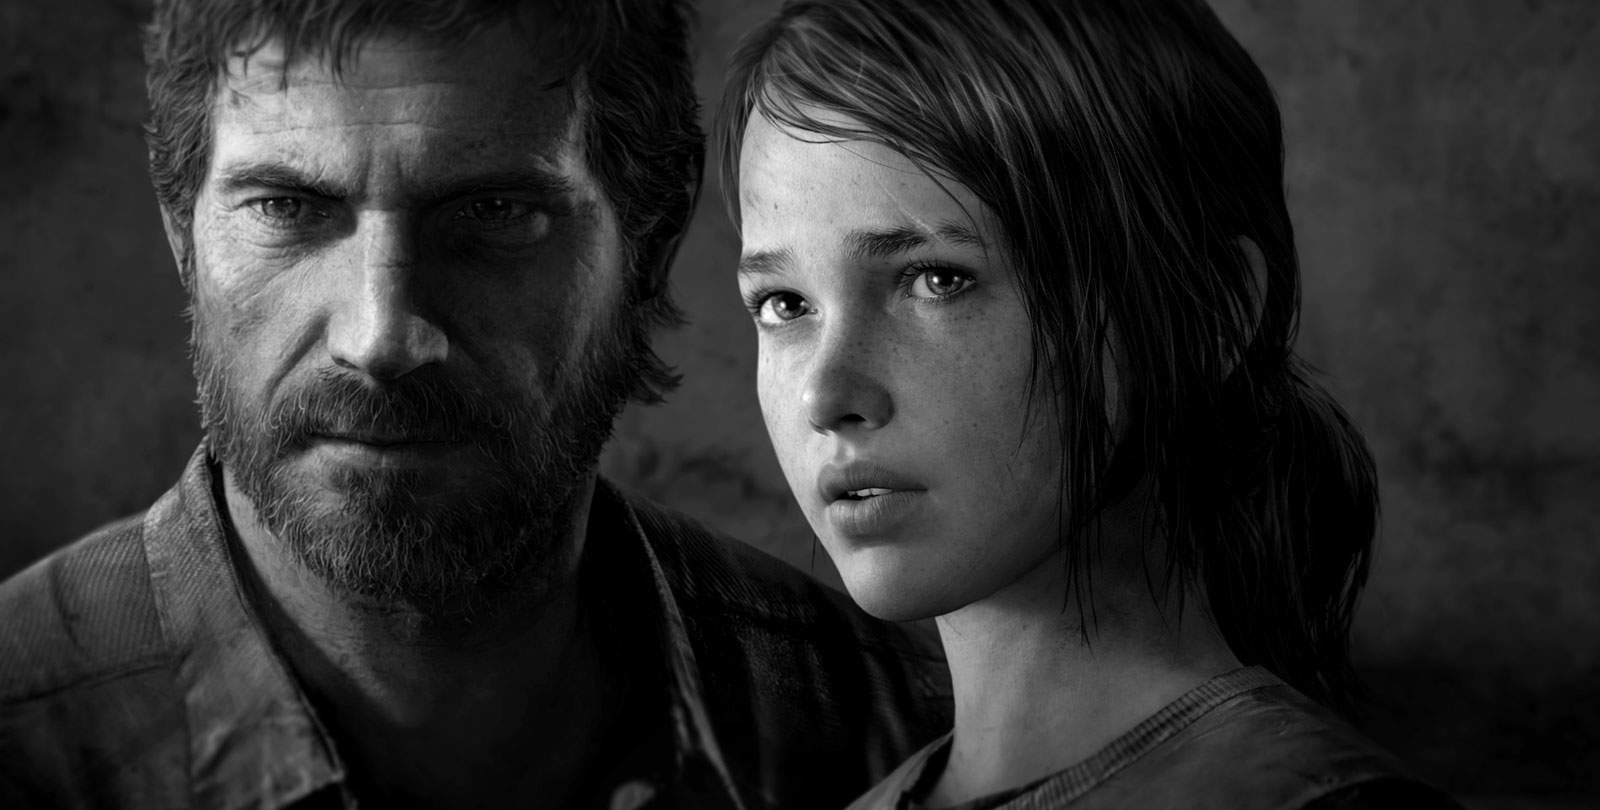 The Last of Us Movie Confirmed by Sony